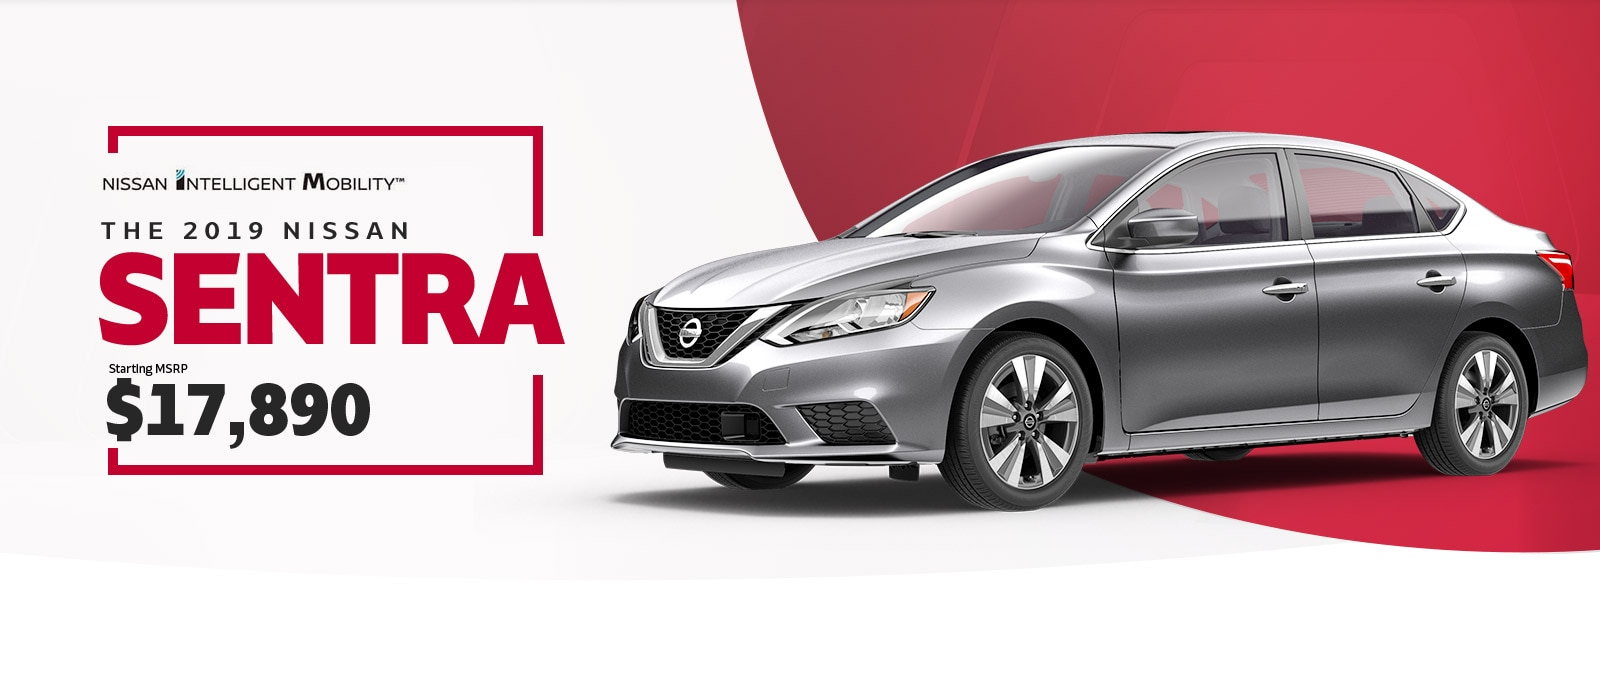 Nissan Sentra dealer in Wallingford